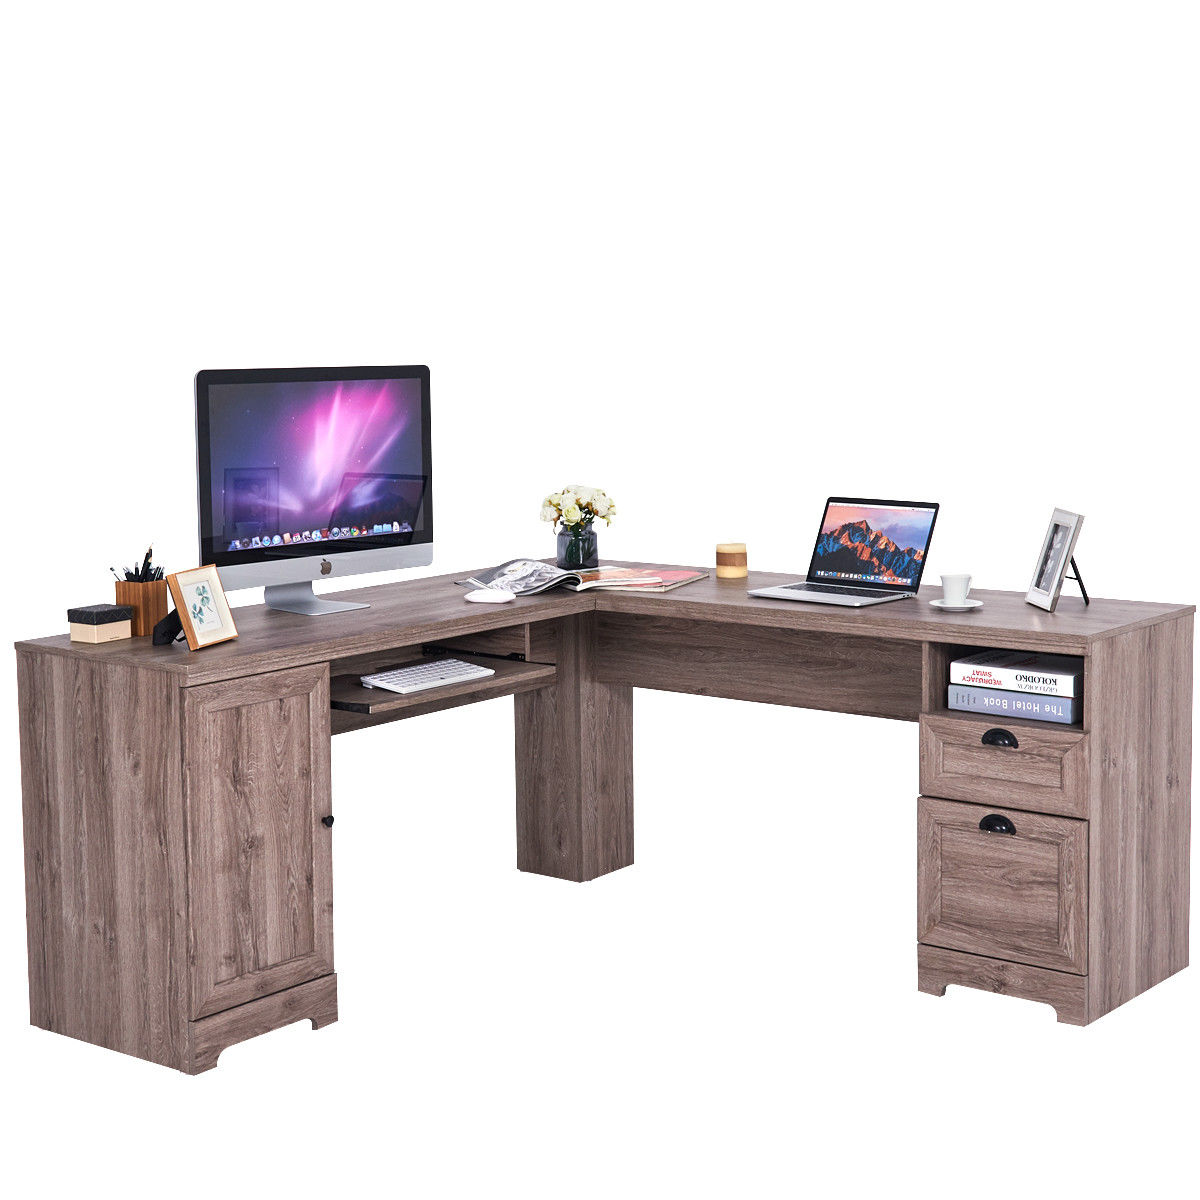 Costway L-Shaped Corner Computer Desk Writing Table Study Workstation w/  Drawers Storage - Walmart.com